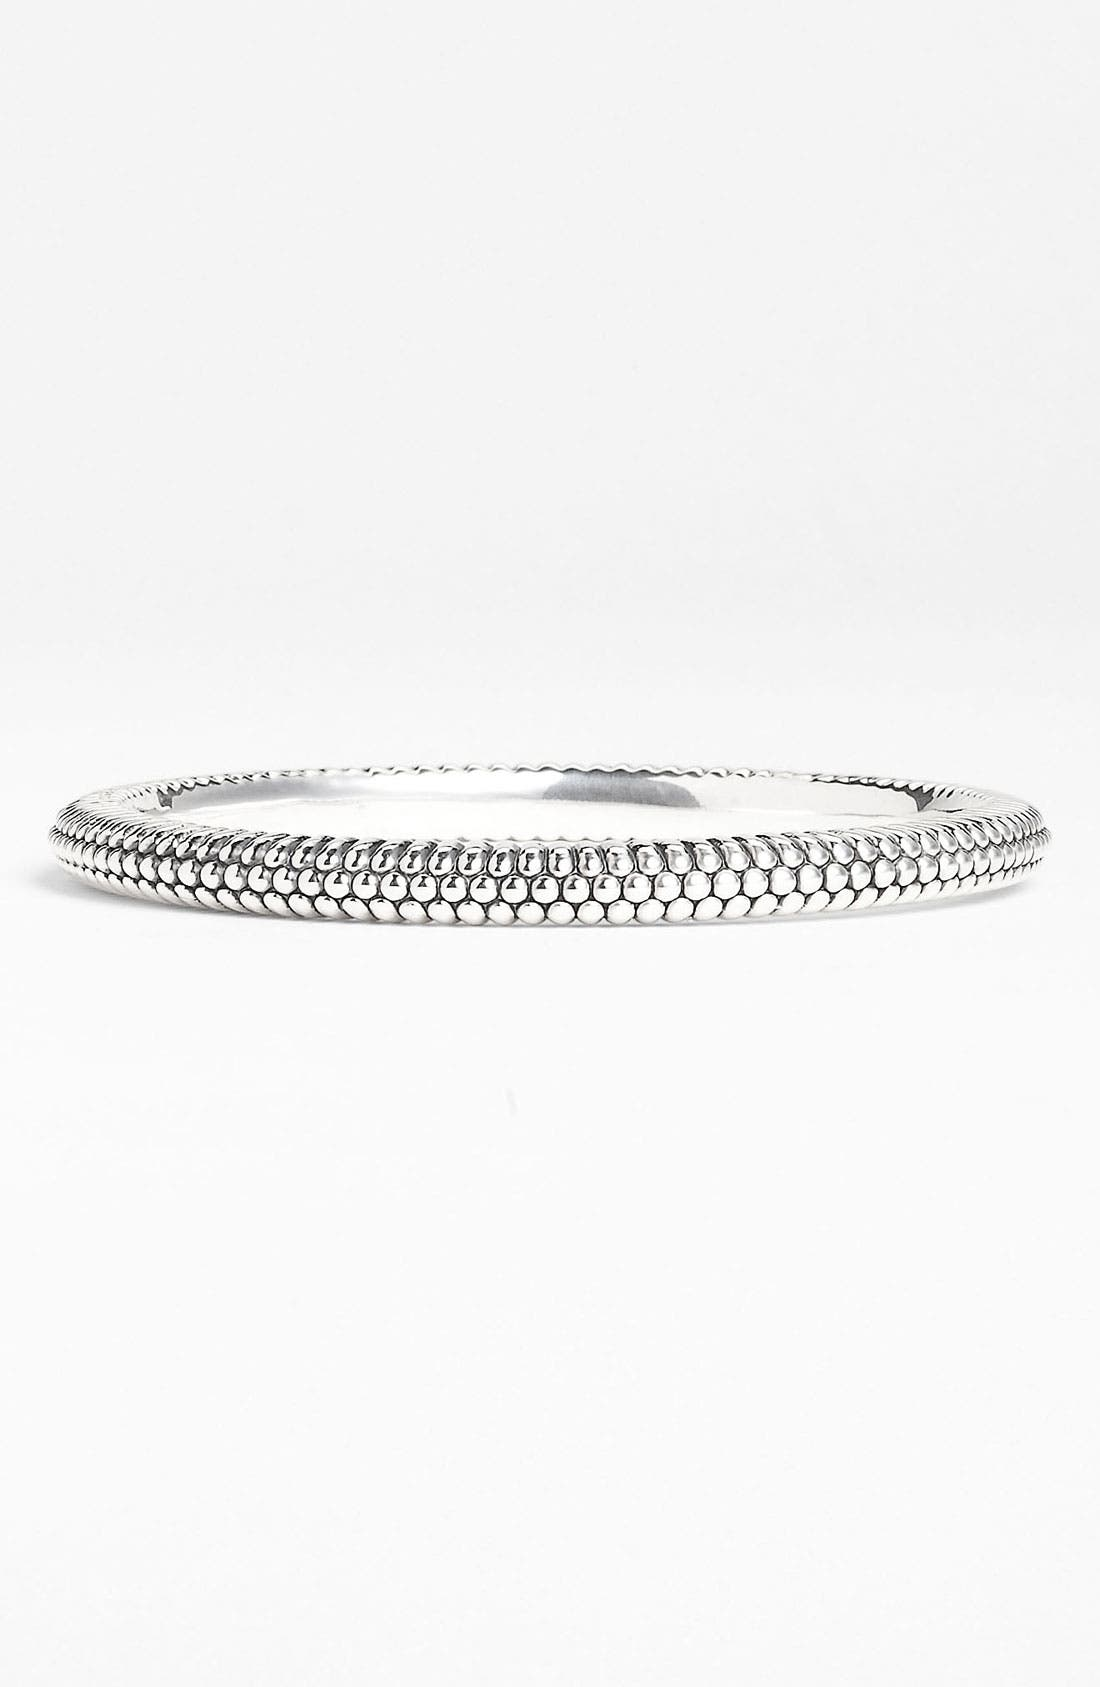 Main Image - Simon Sebbag 'Prosecco' Bangle